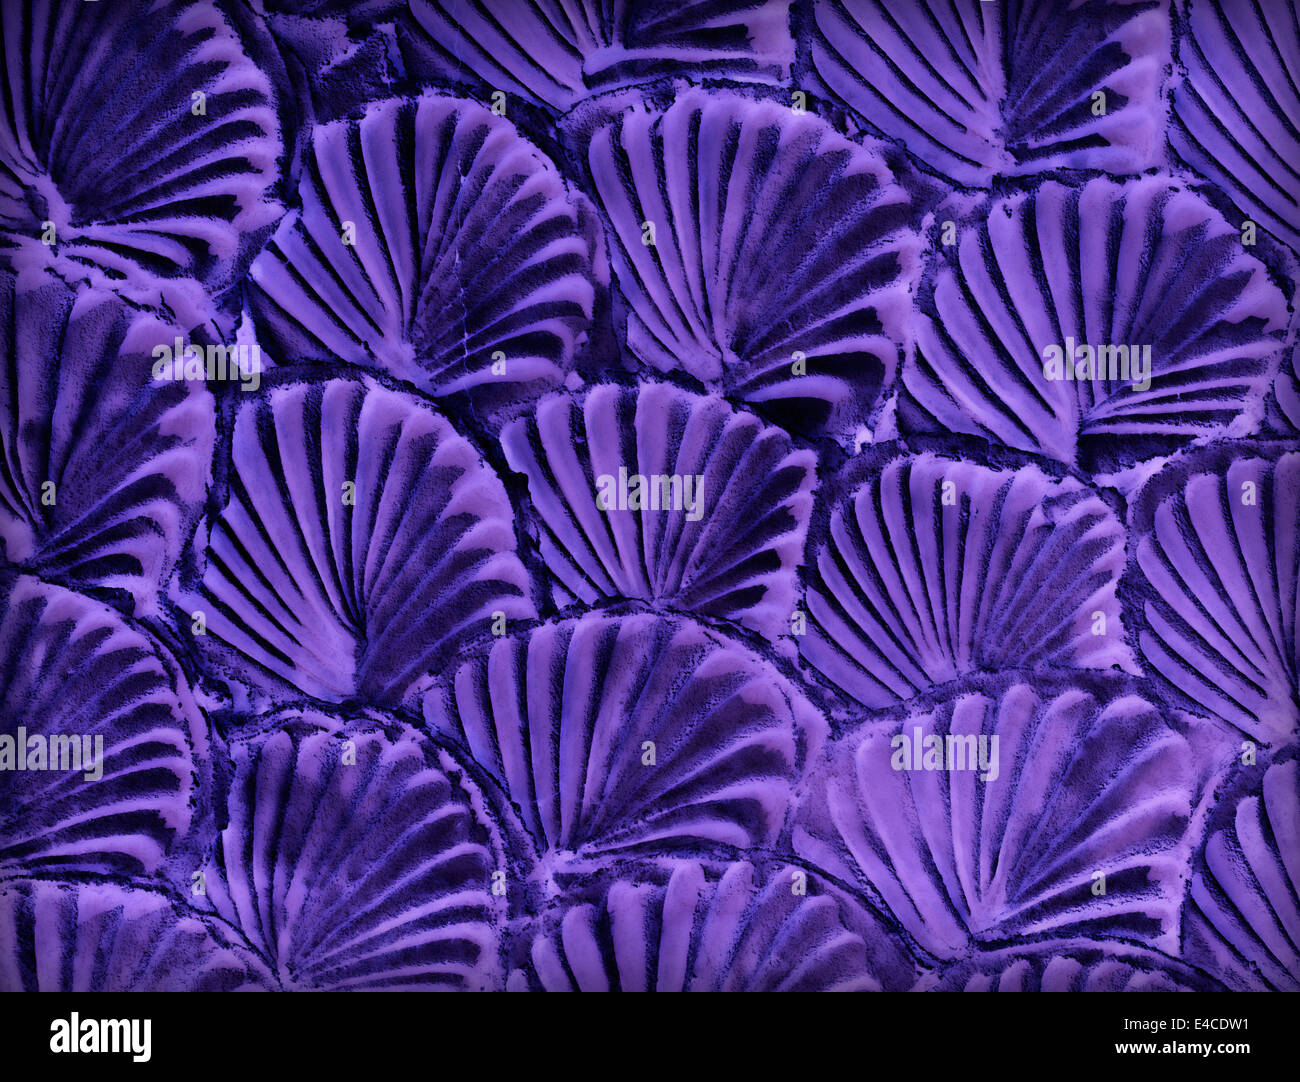 Purple mortar wall texture background aesthetic. - Stock Image